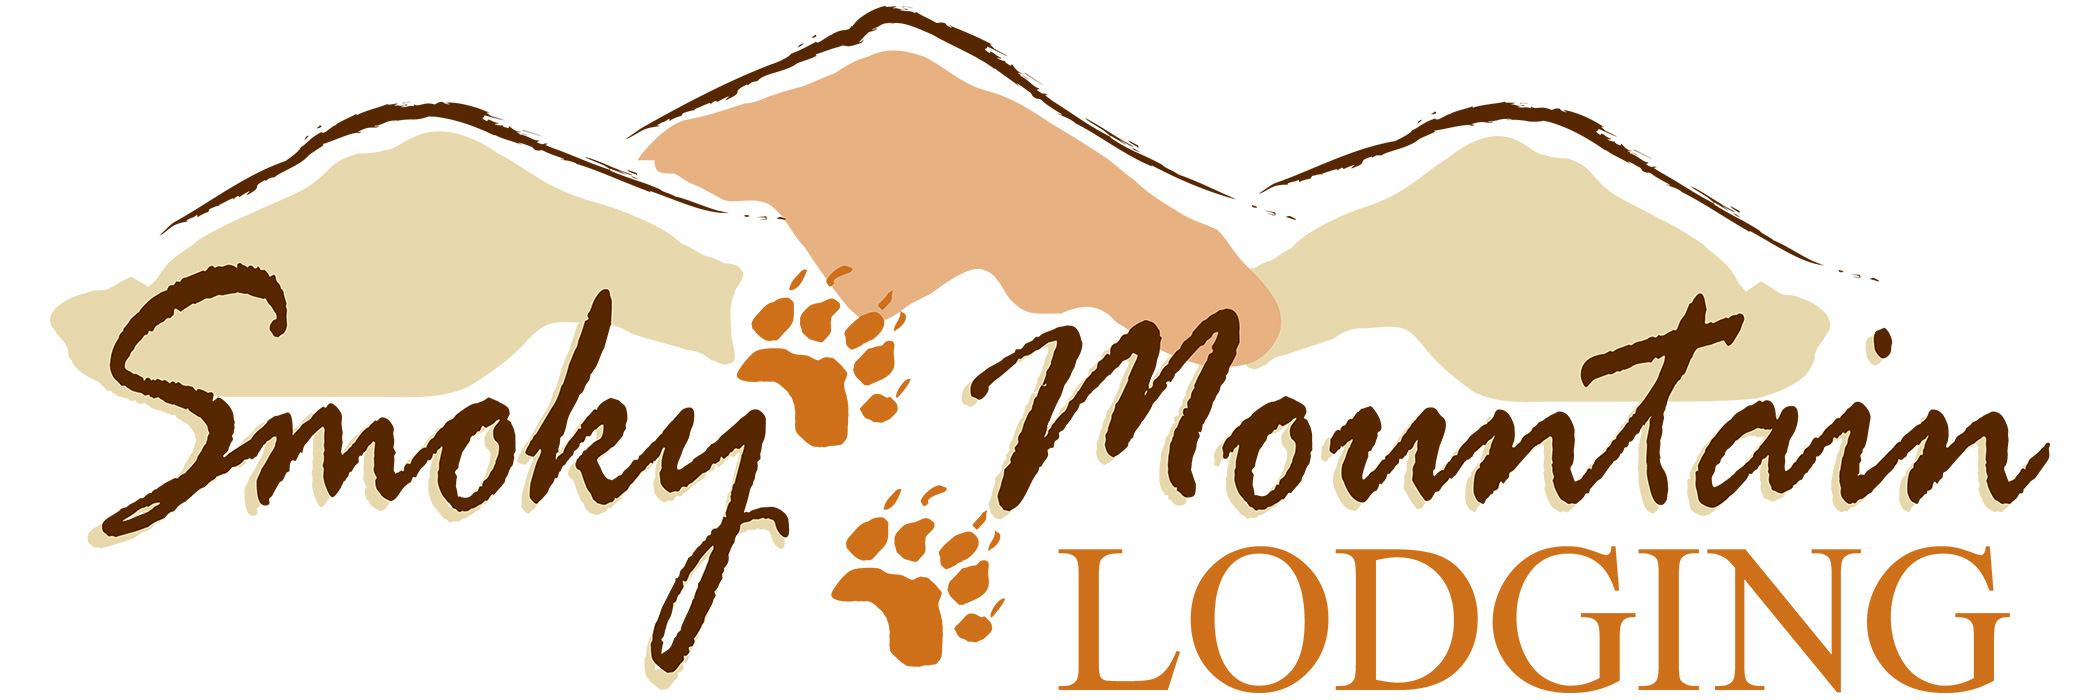 Smoky Mountain Lodging, LLC.